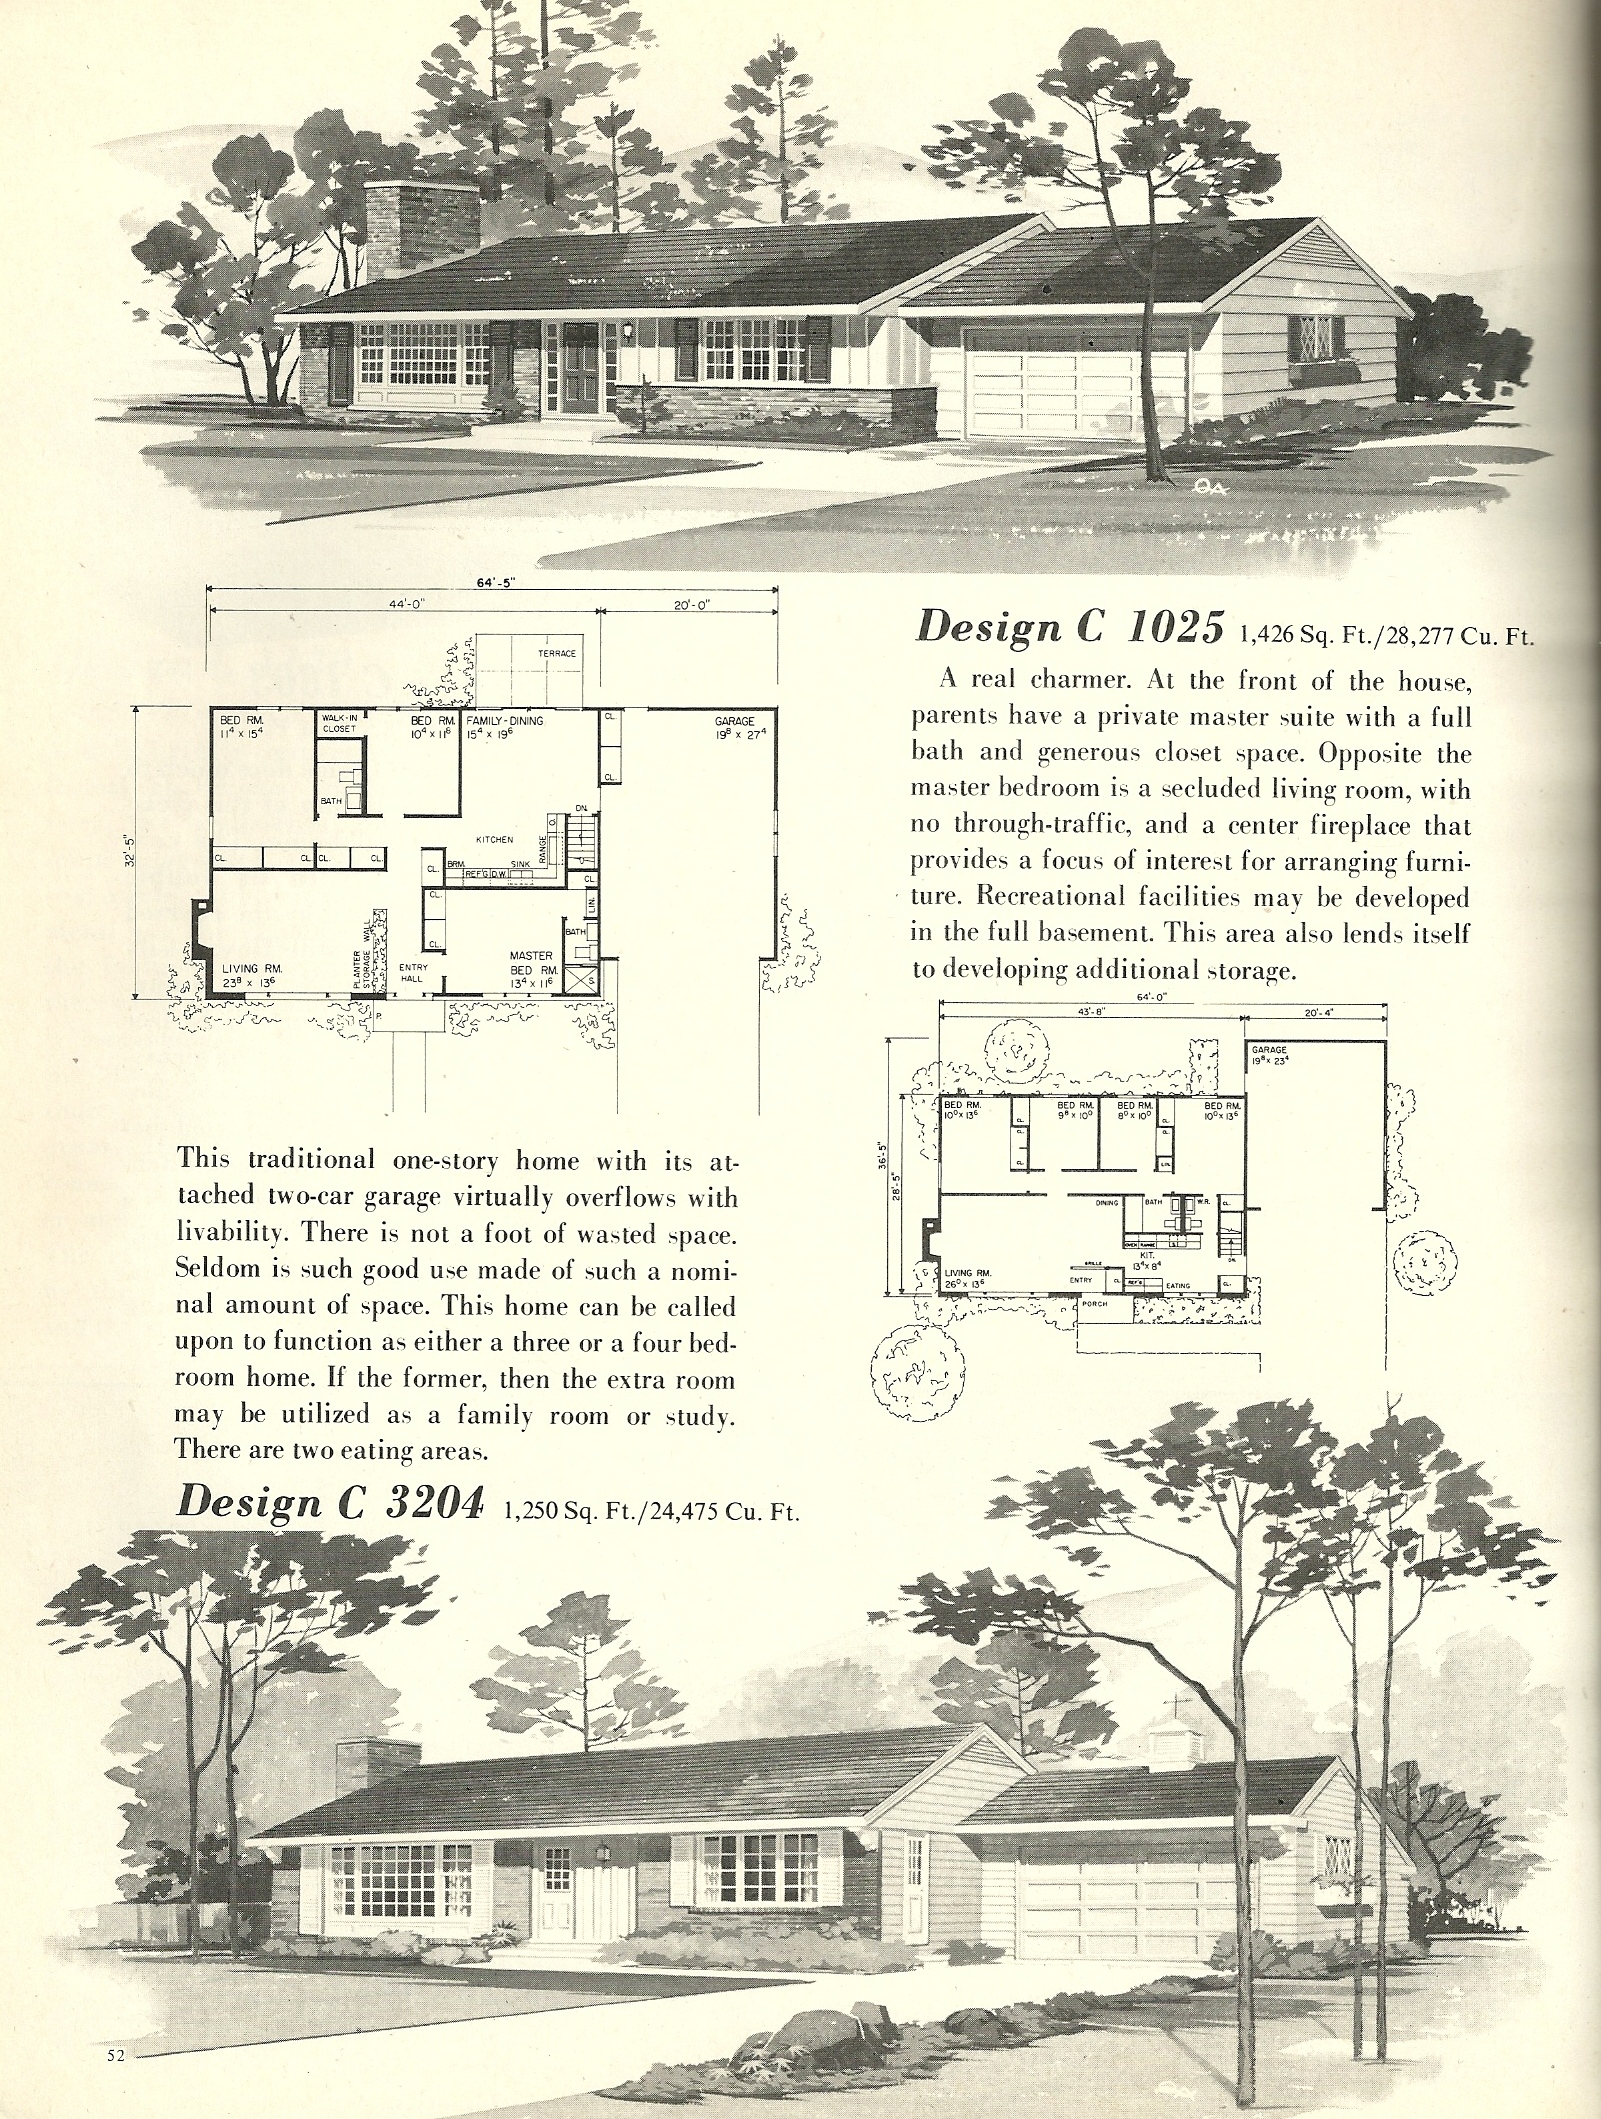 Vintage house plans 1025 antique alter ego for 1960 ranch house plans